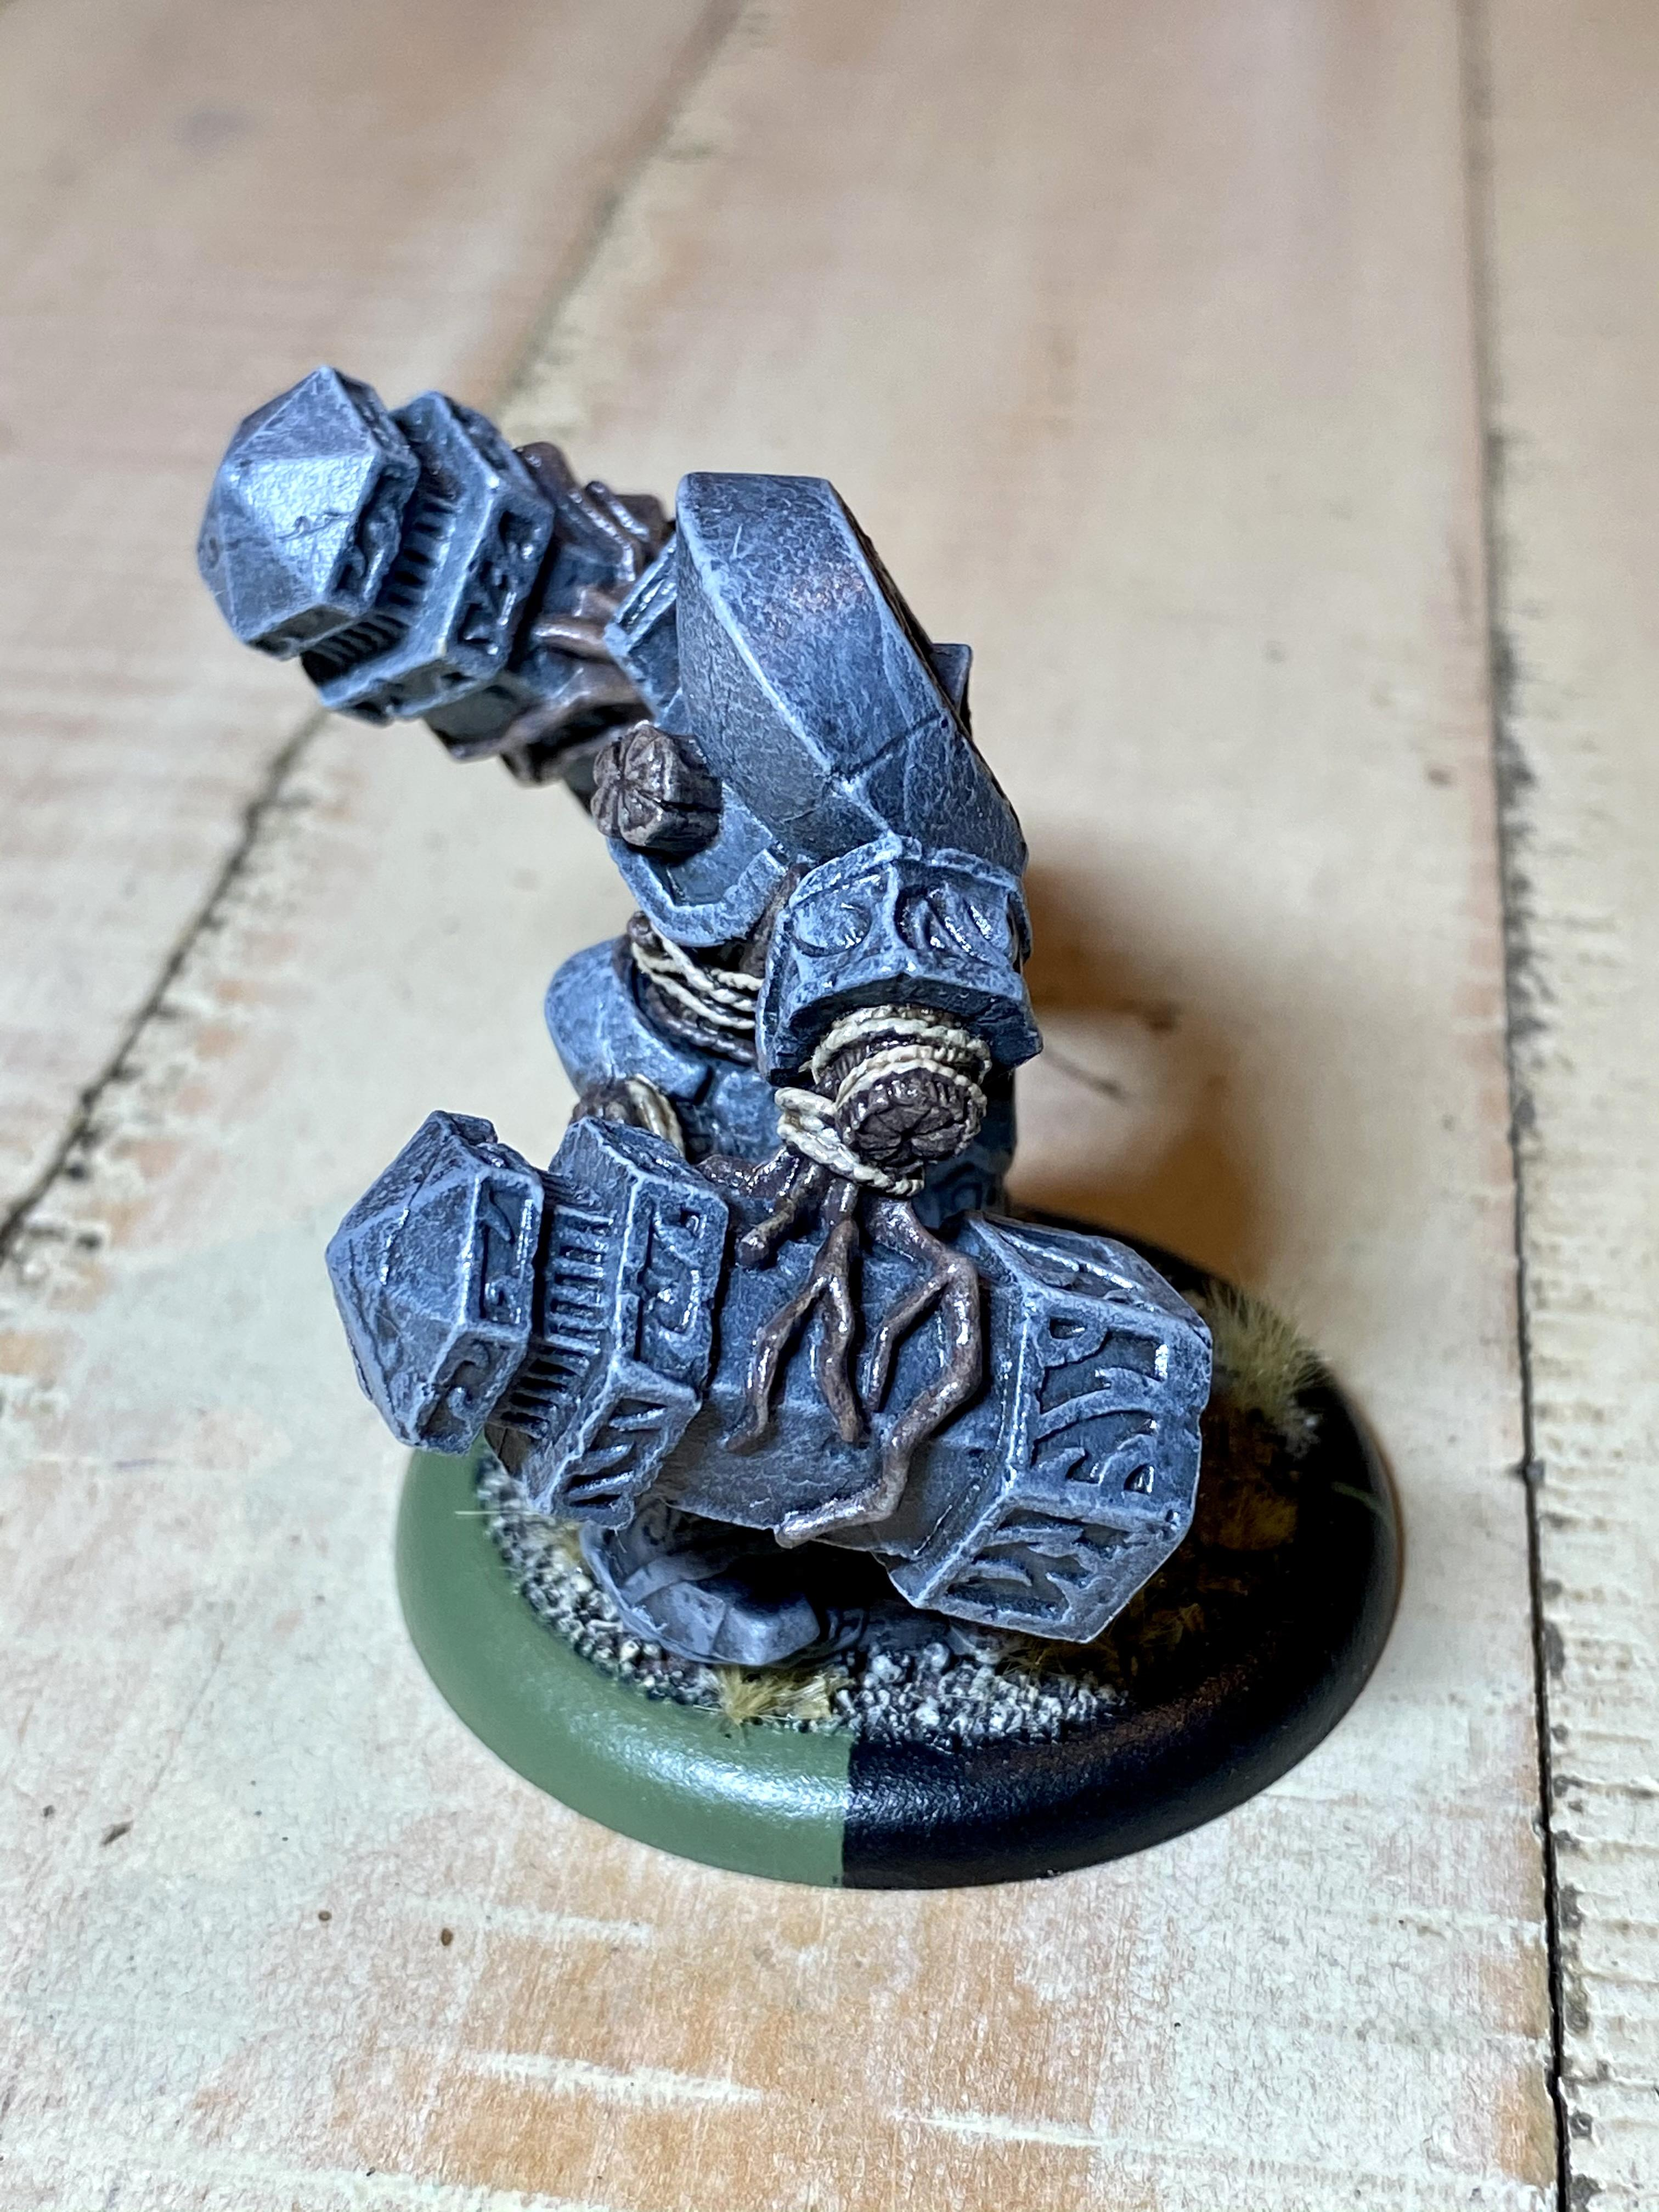 Circle Of Orboros, Construct, Hordes, Privateer Press, Solo, Warbeast, Warlock, Warmachine, Wold, Wolf